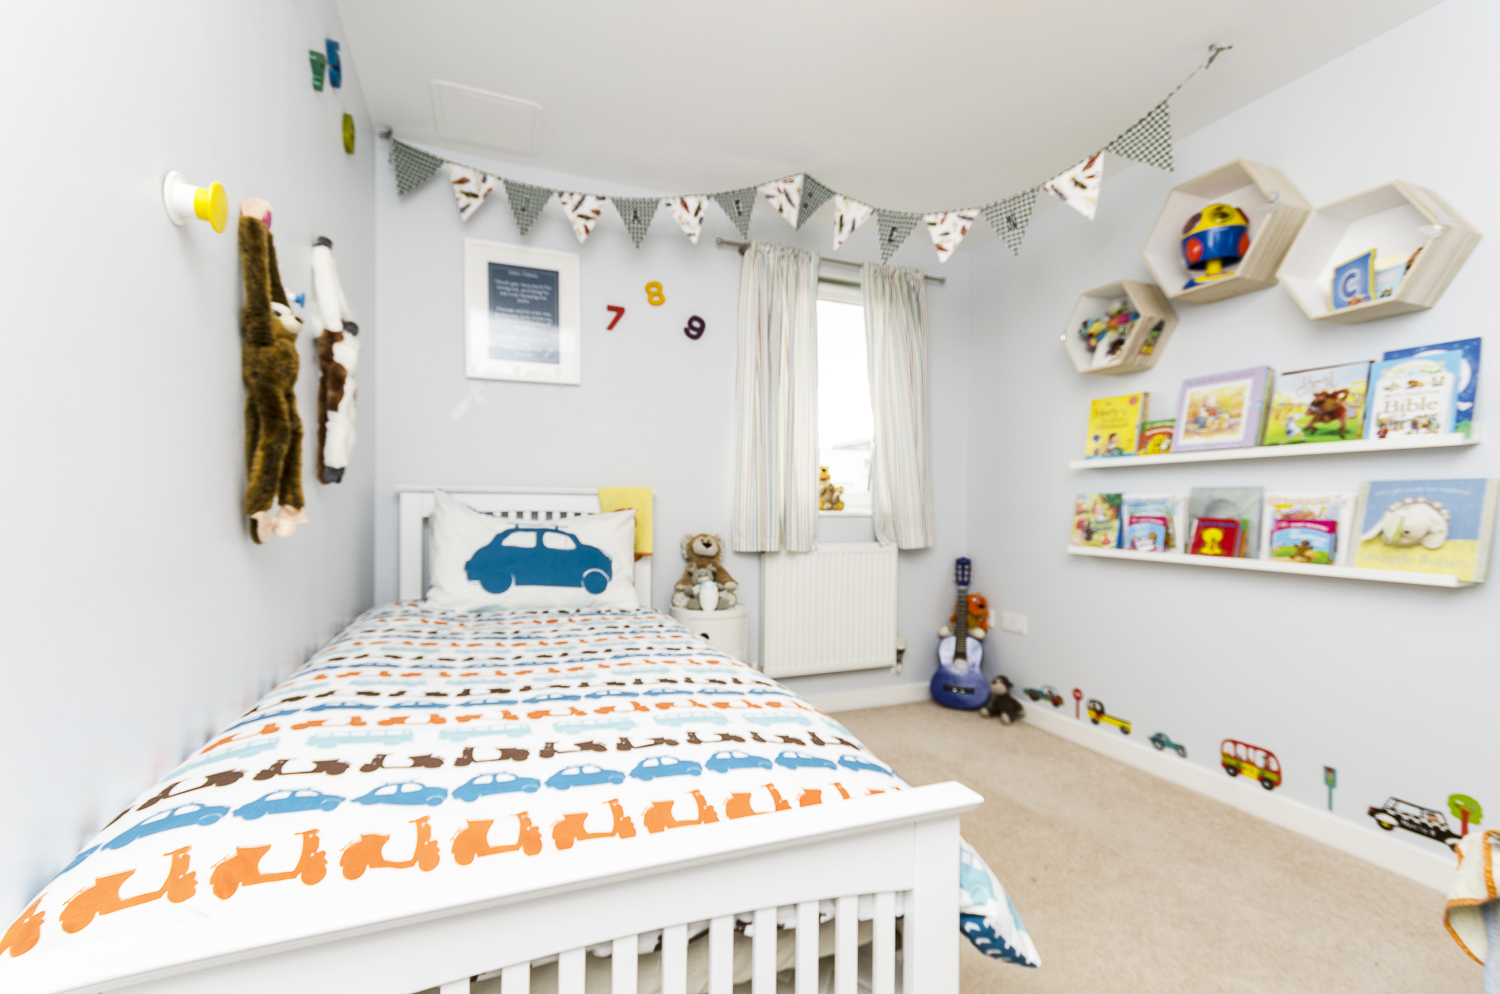 Children 39 s bedroom decorating ideas playing in style for Things to decorate bedroom